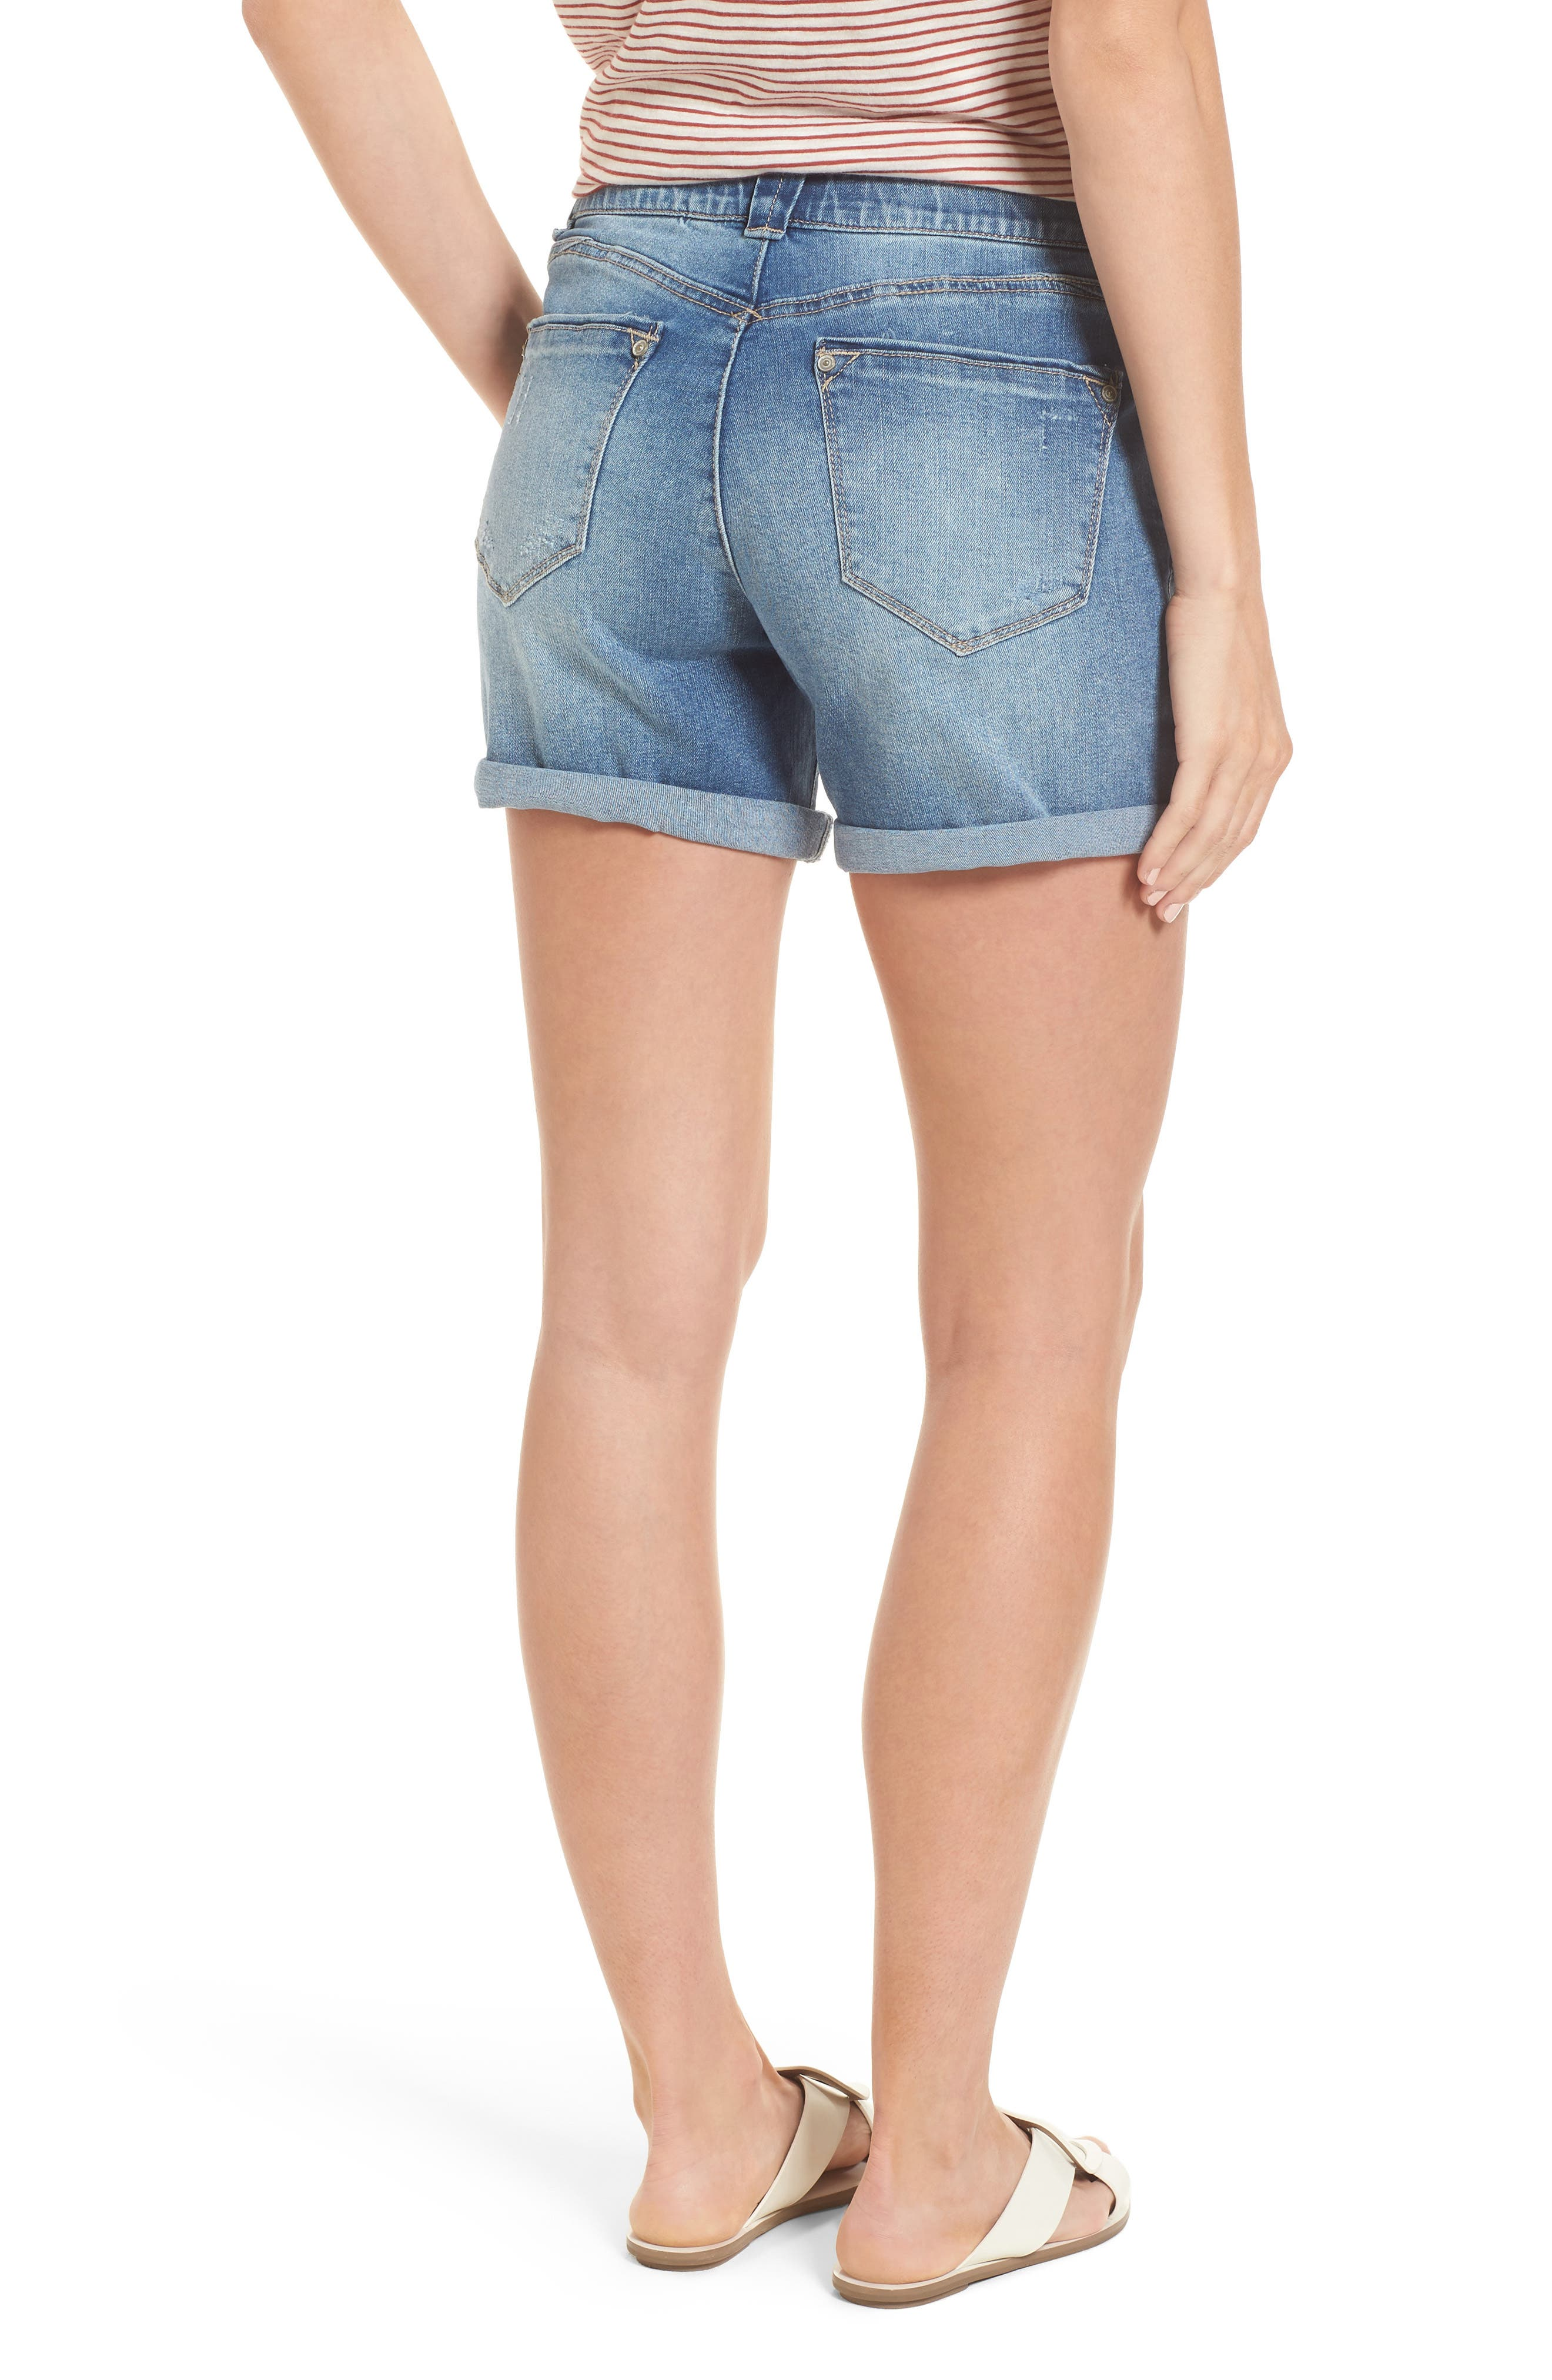 Ab-solution Denim Shorts,                             Alternate thumbnail 2, color,                             Light Blue